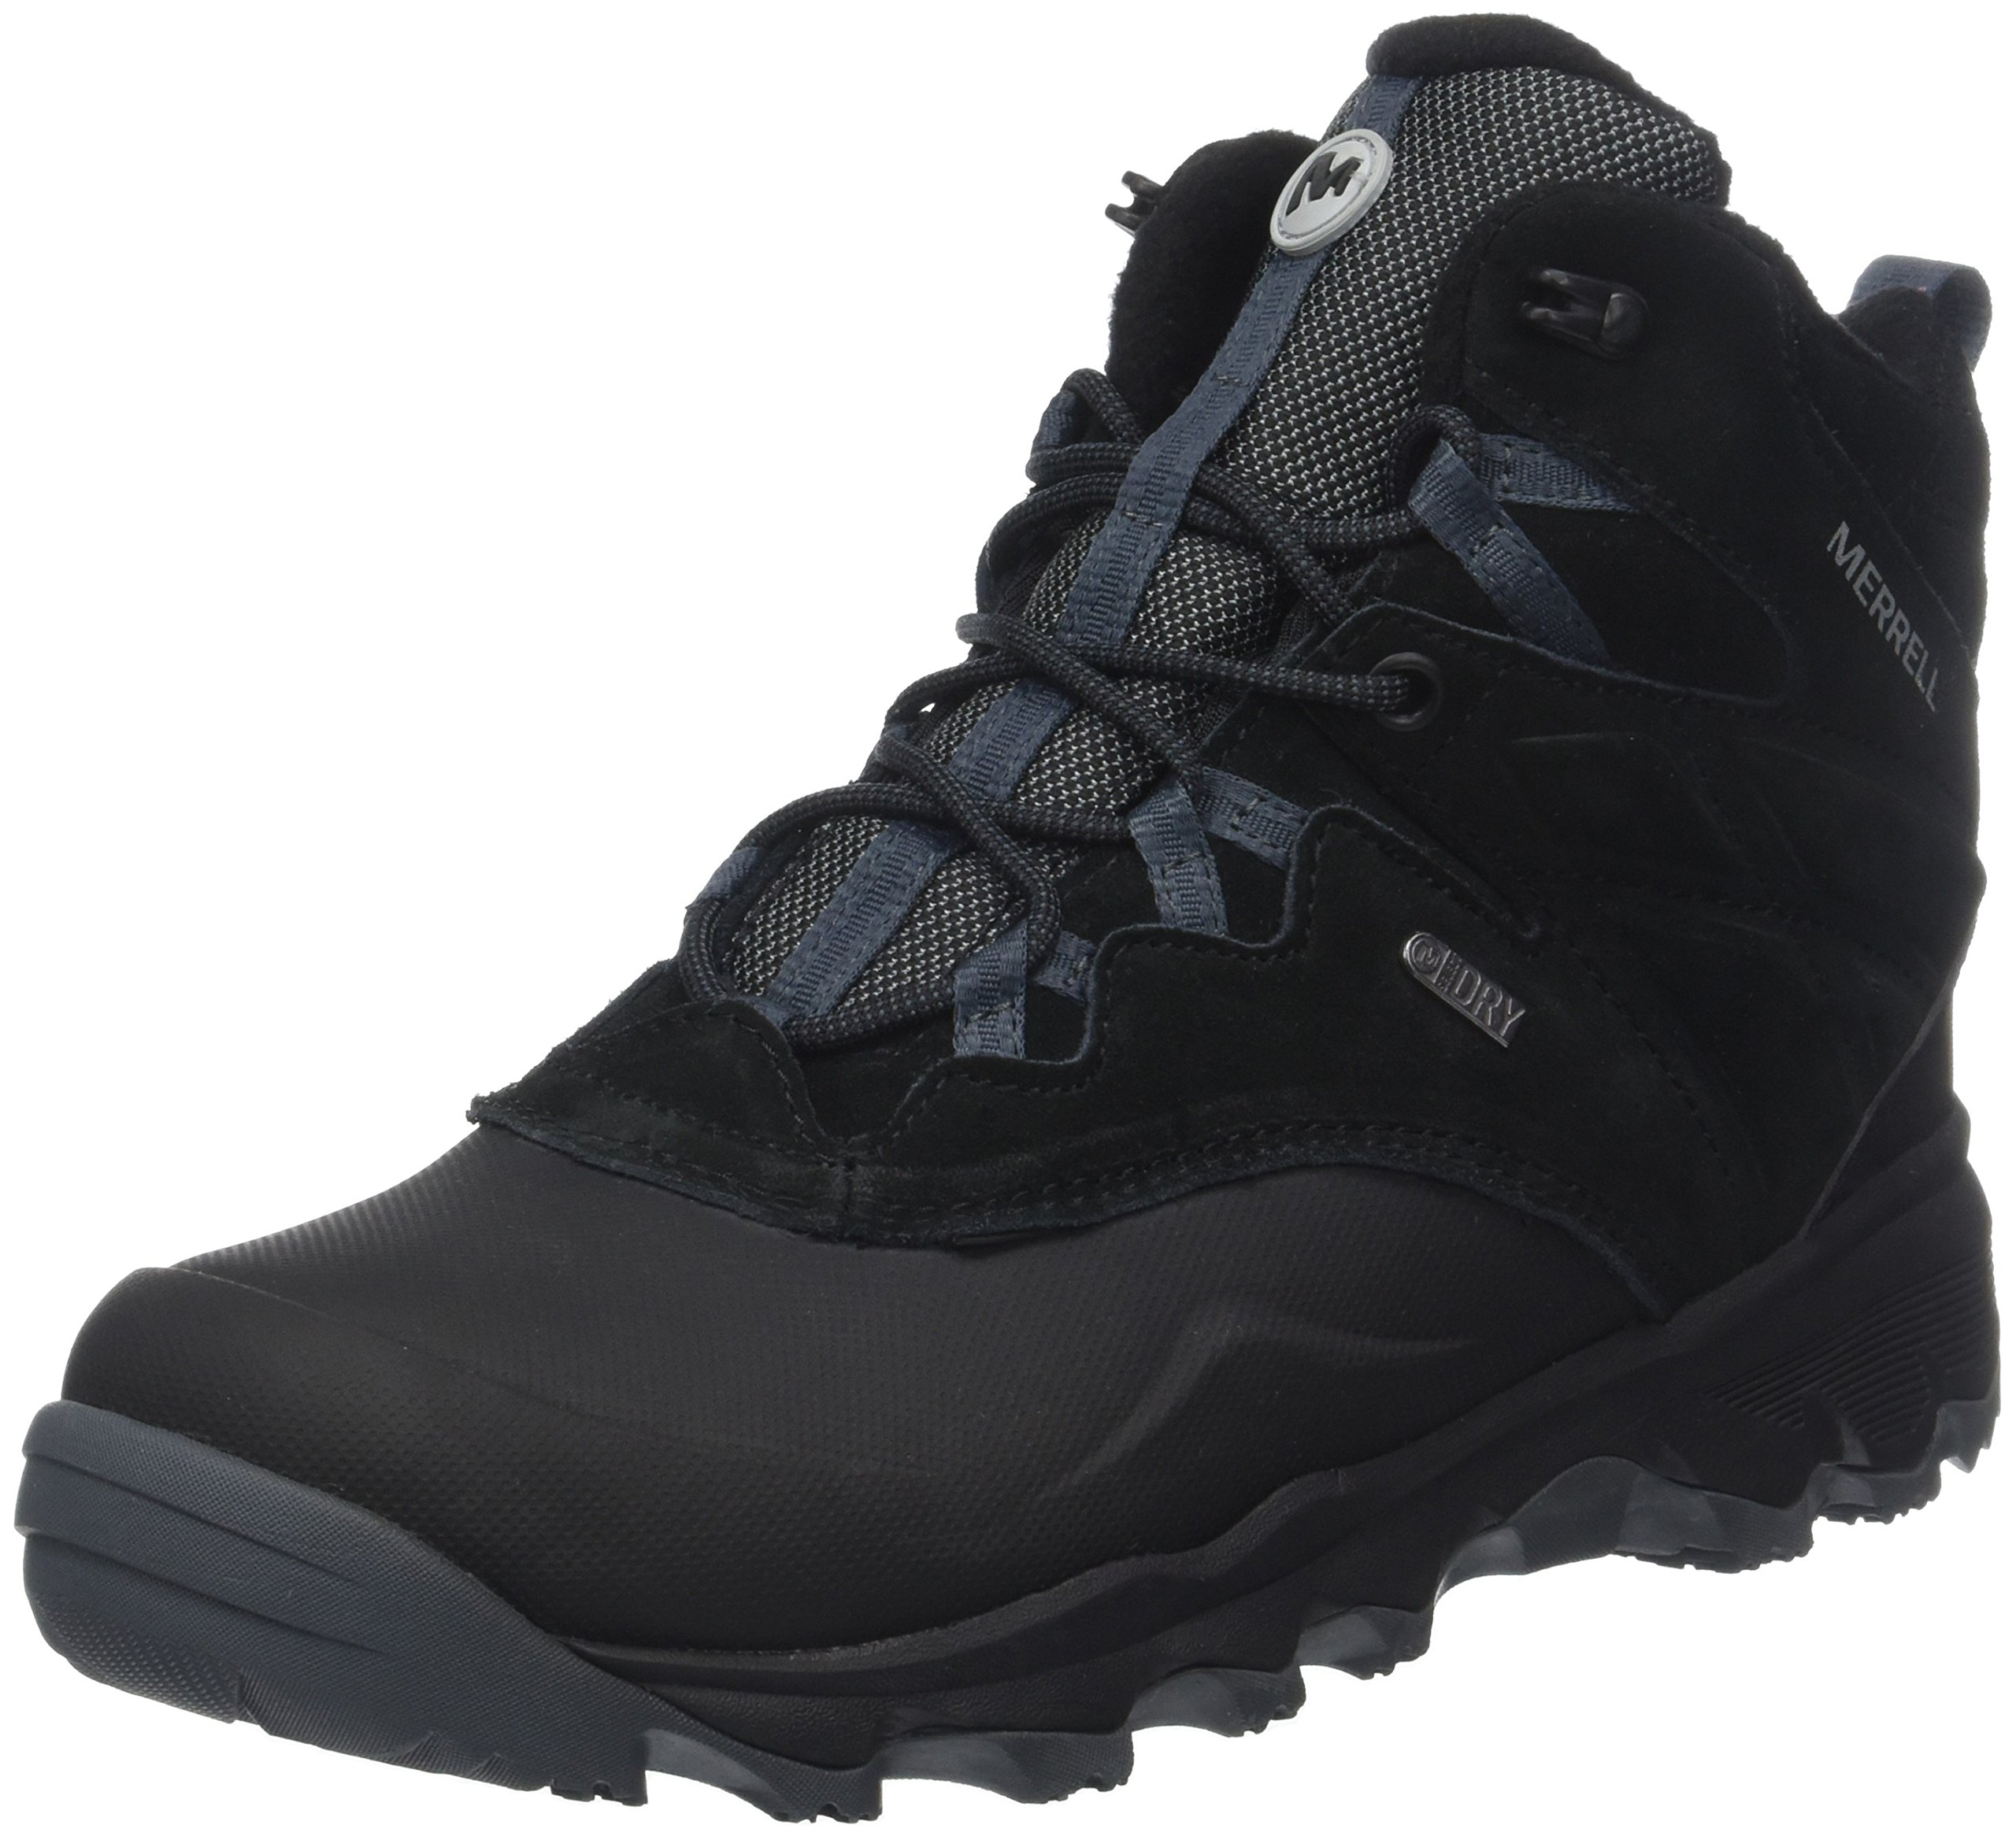 Merrell Men's Thermo Shiver 6'' Waterproof Snow Boot, Black, 11 M US